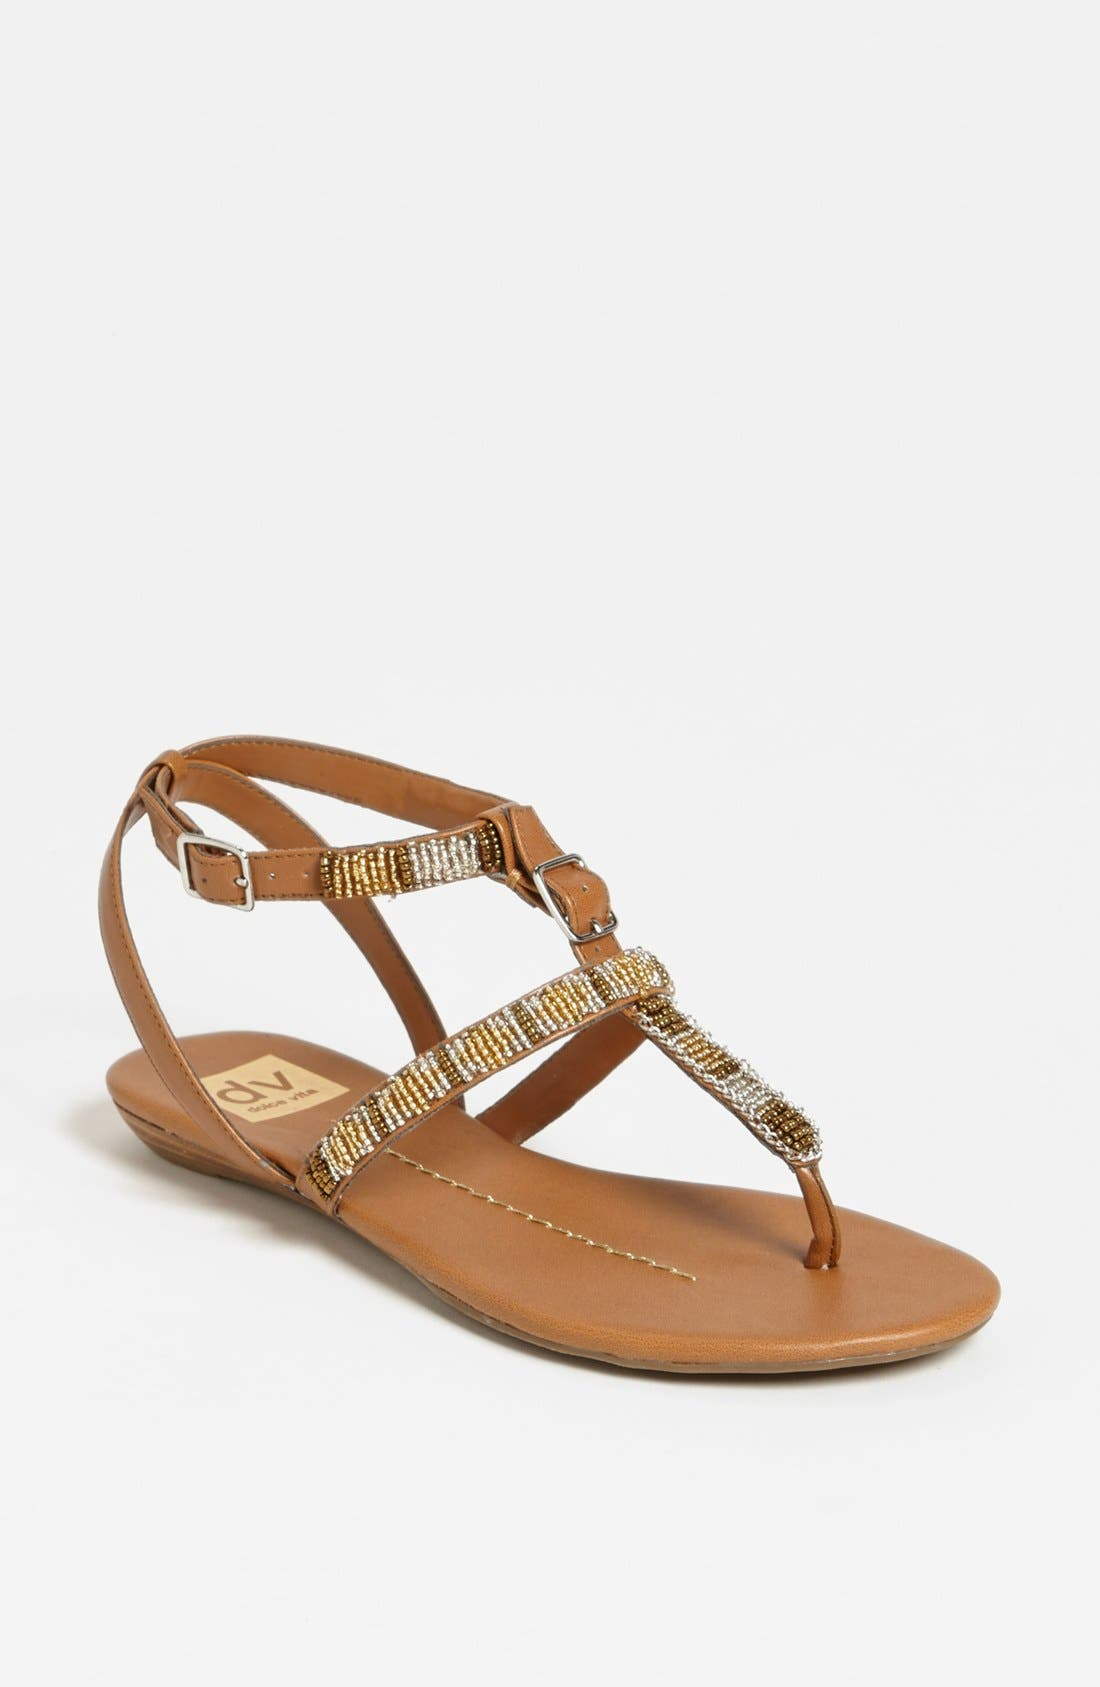 Alternate Image 1 Selected - DV by Dolce Vita 'Austen' Sandal